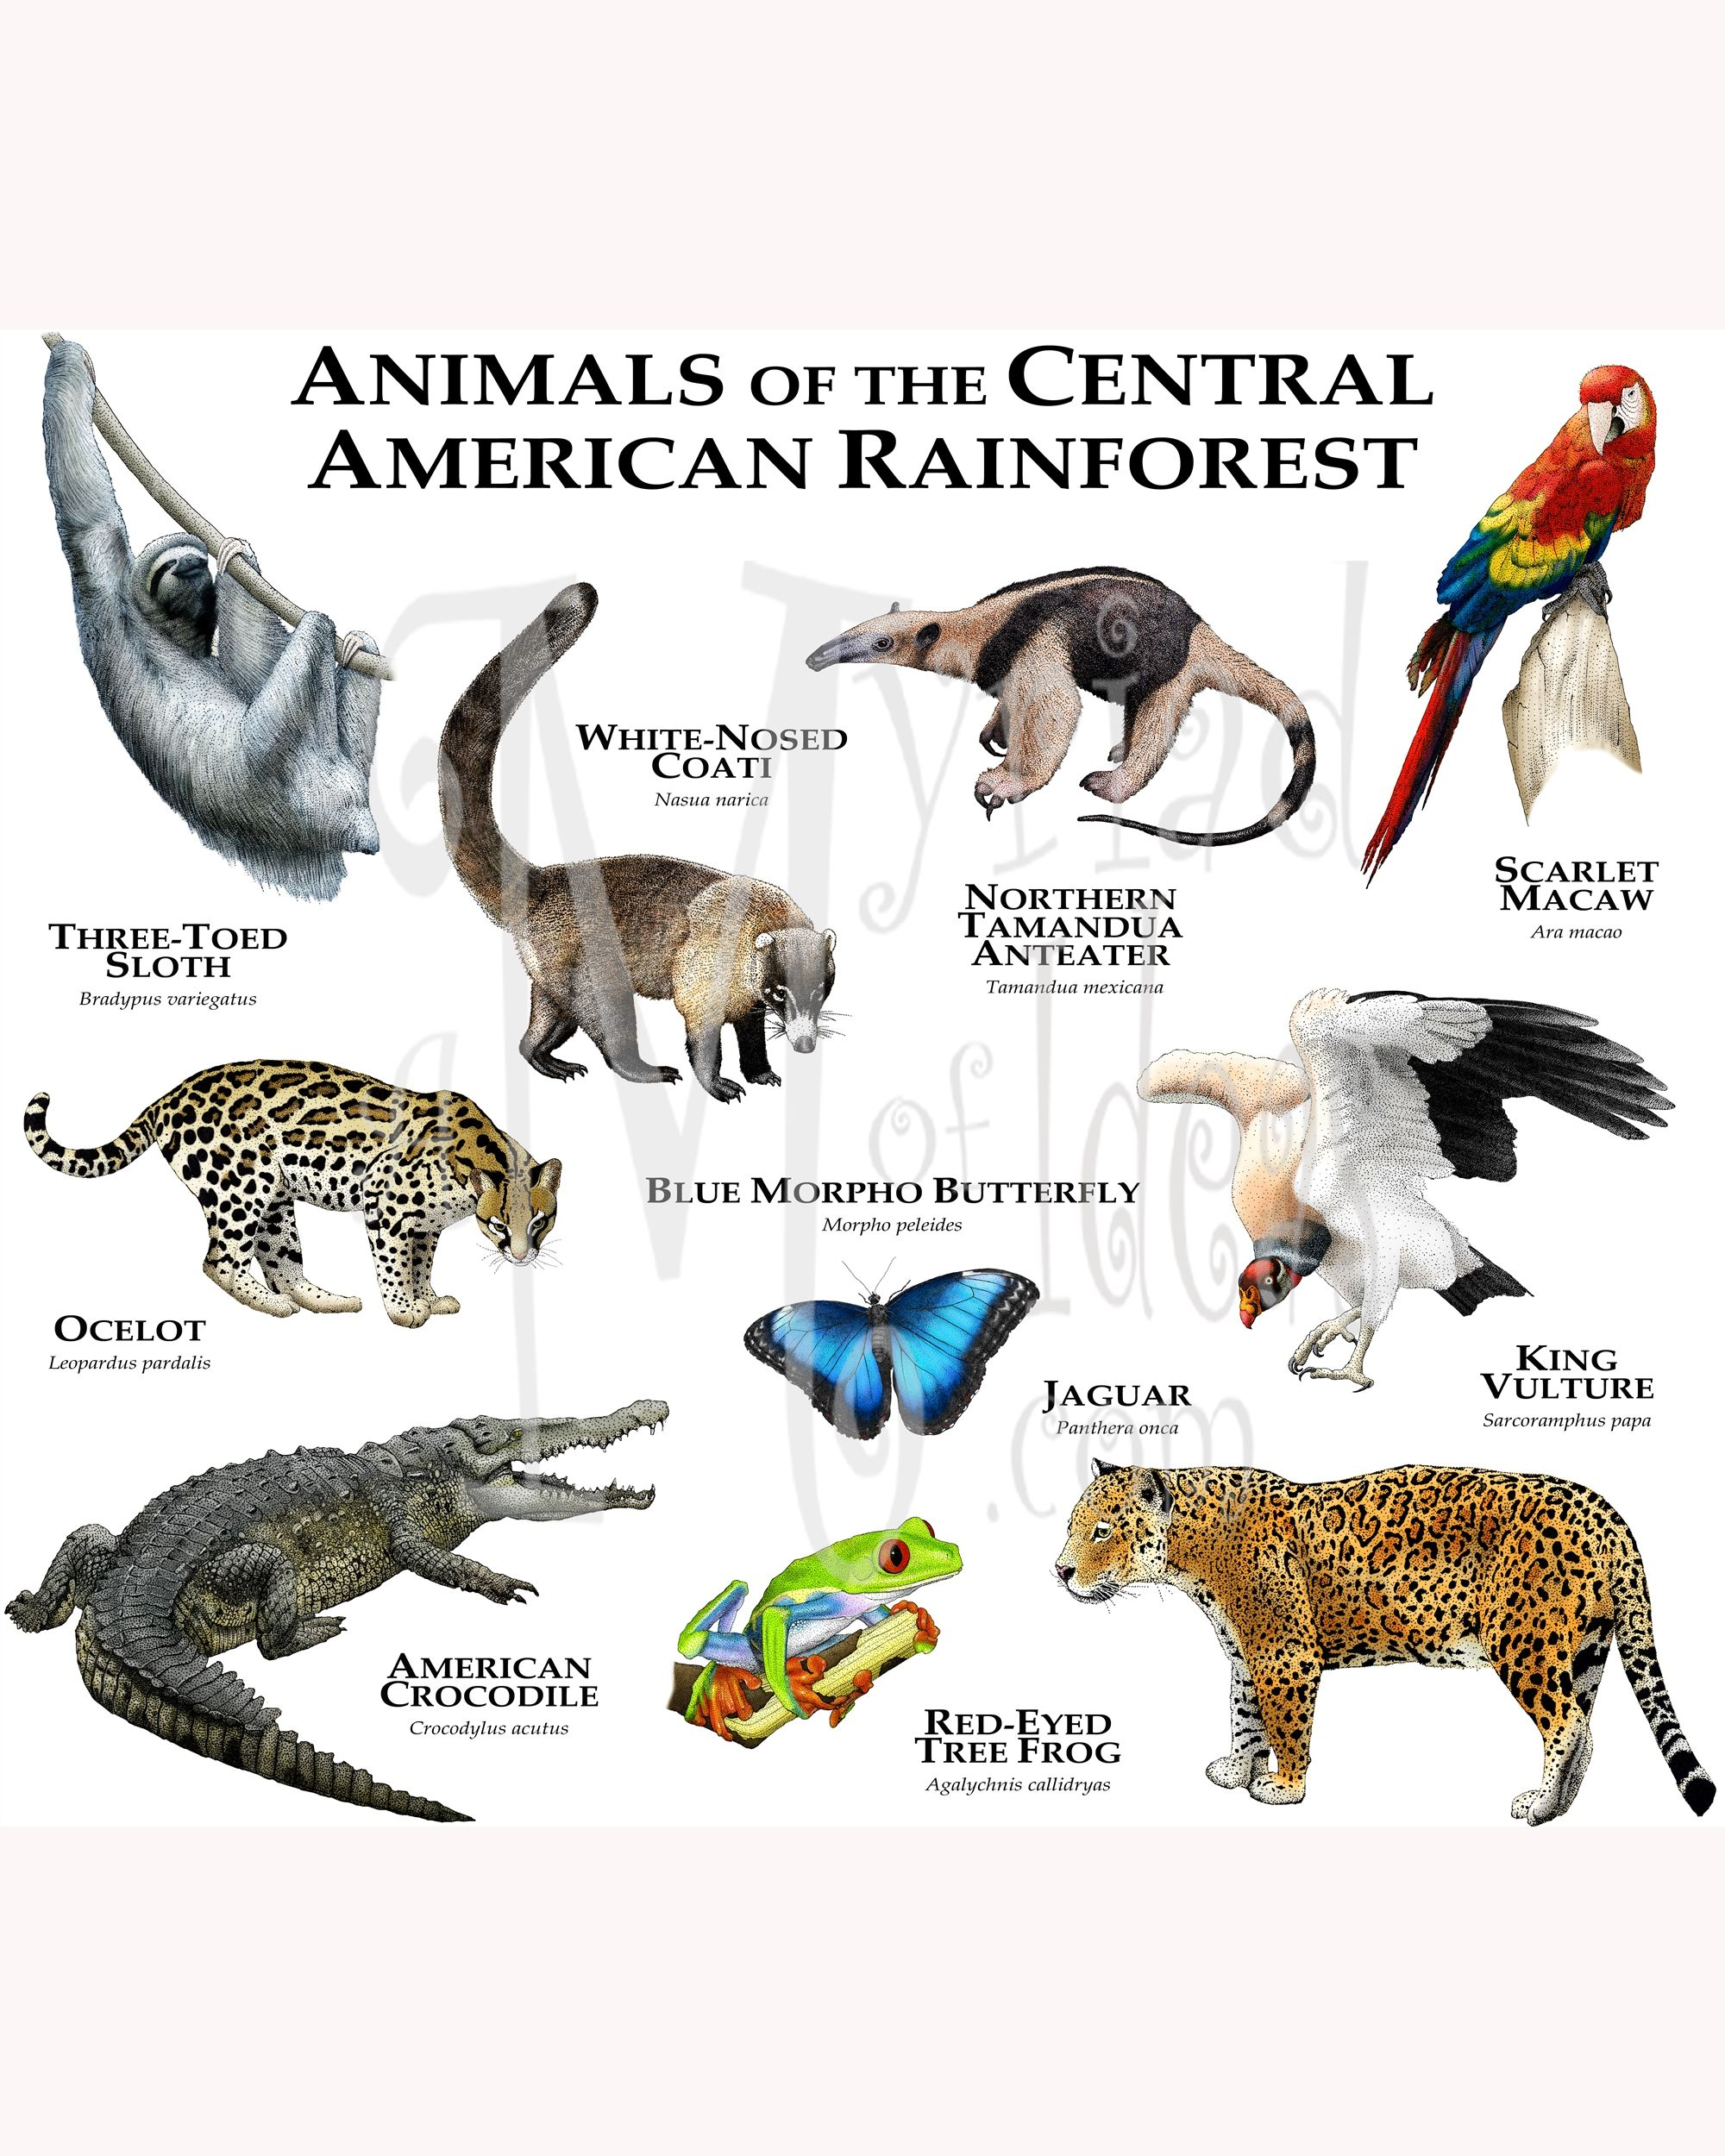 Animals of the Central American Rainforest this collage